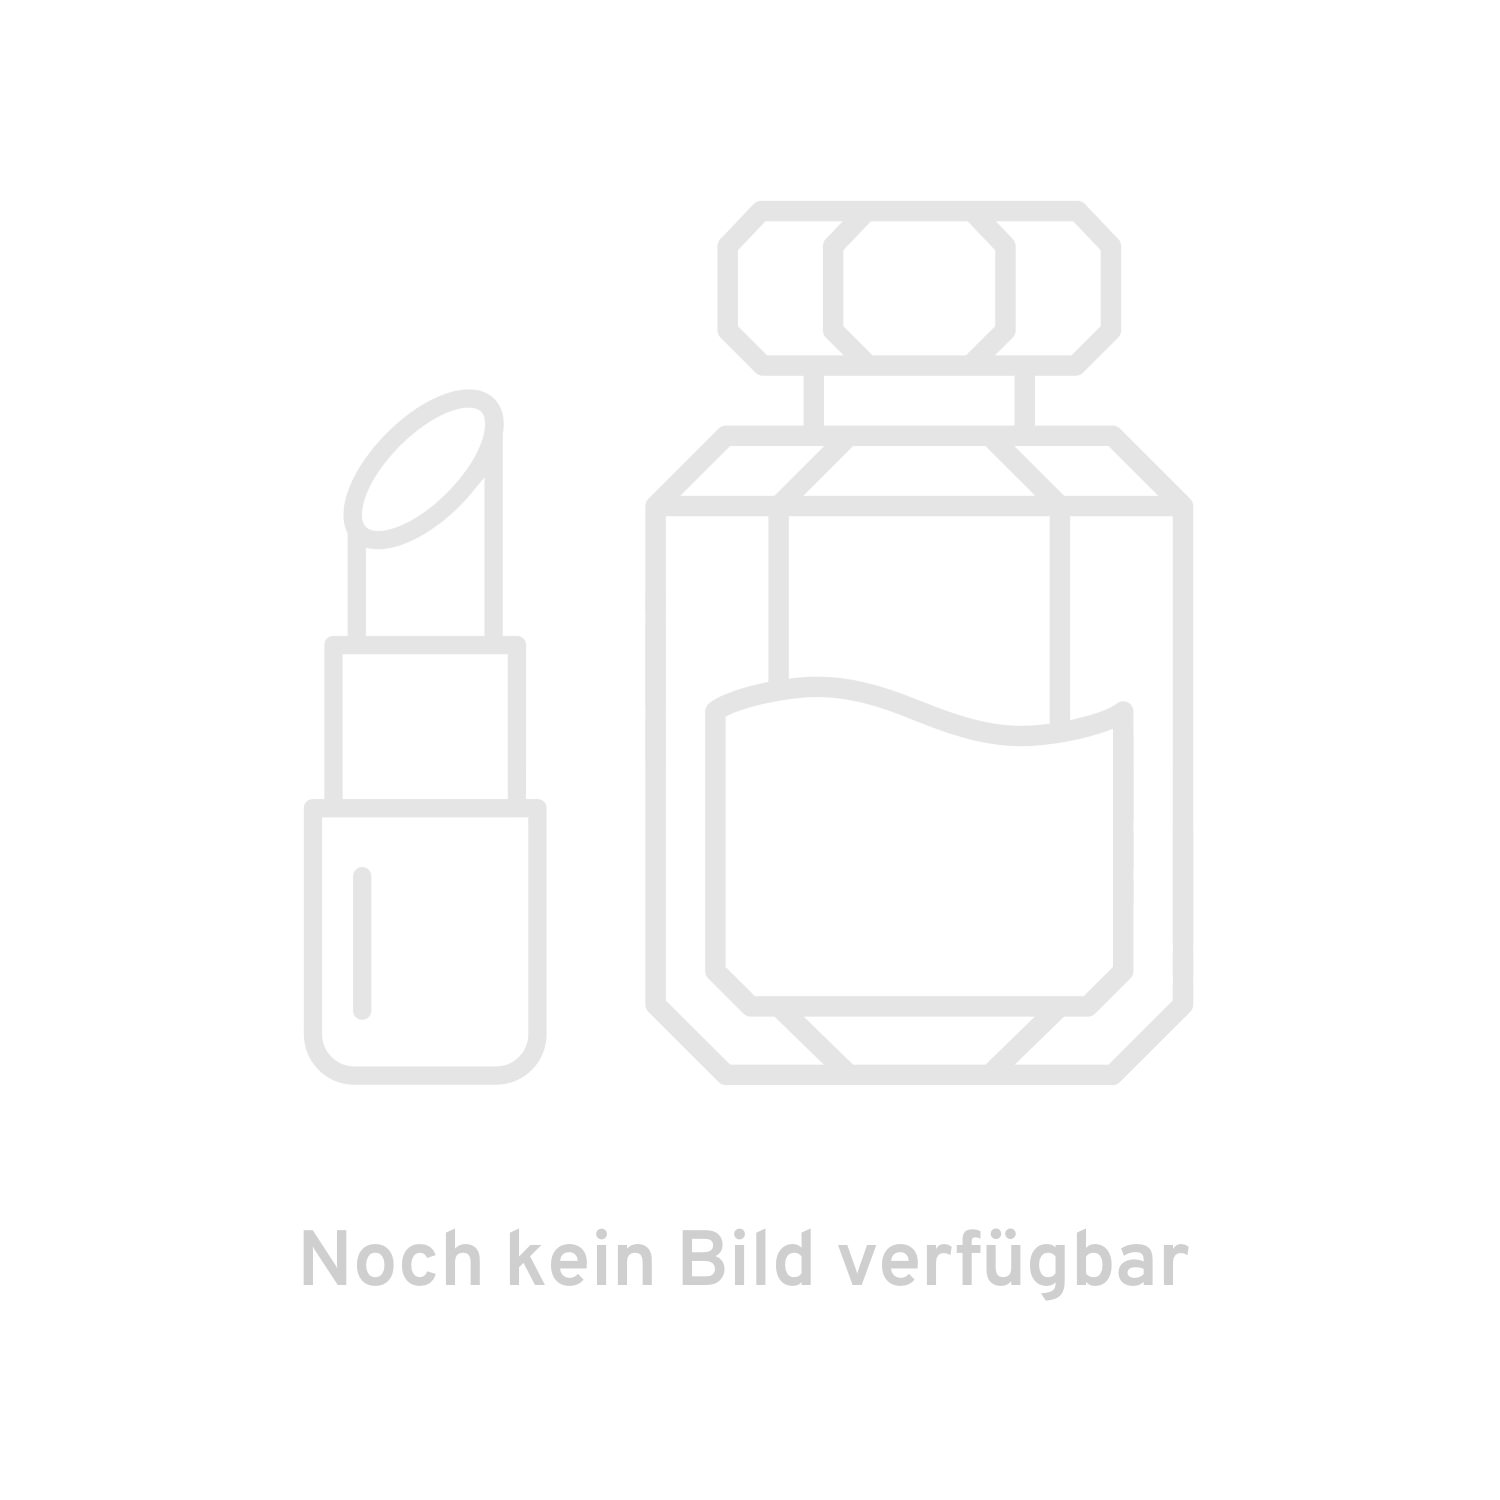 lime patchouli hand wash von molton brown bestellen bei ludwig beck beauty online. Black Bedroom Furniture Sets. Home Design Ideas